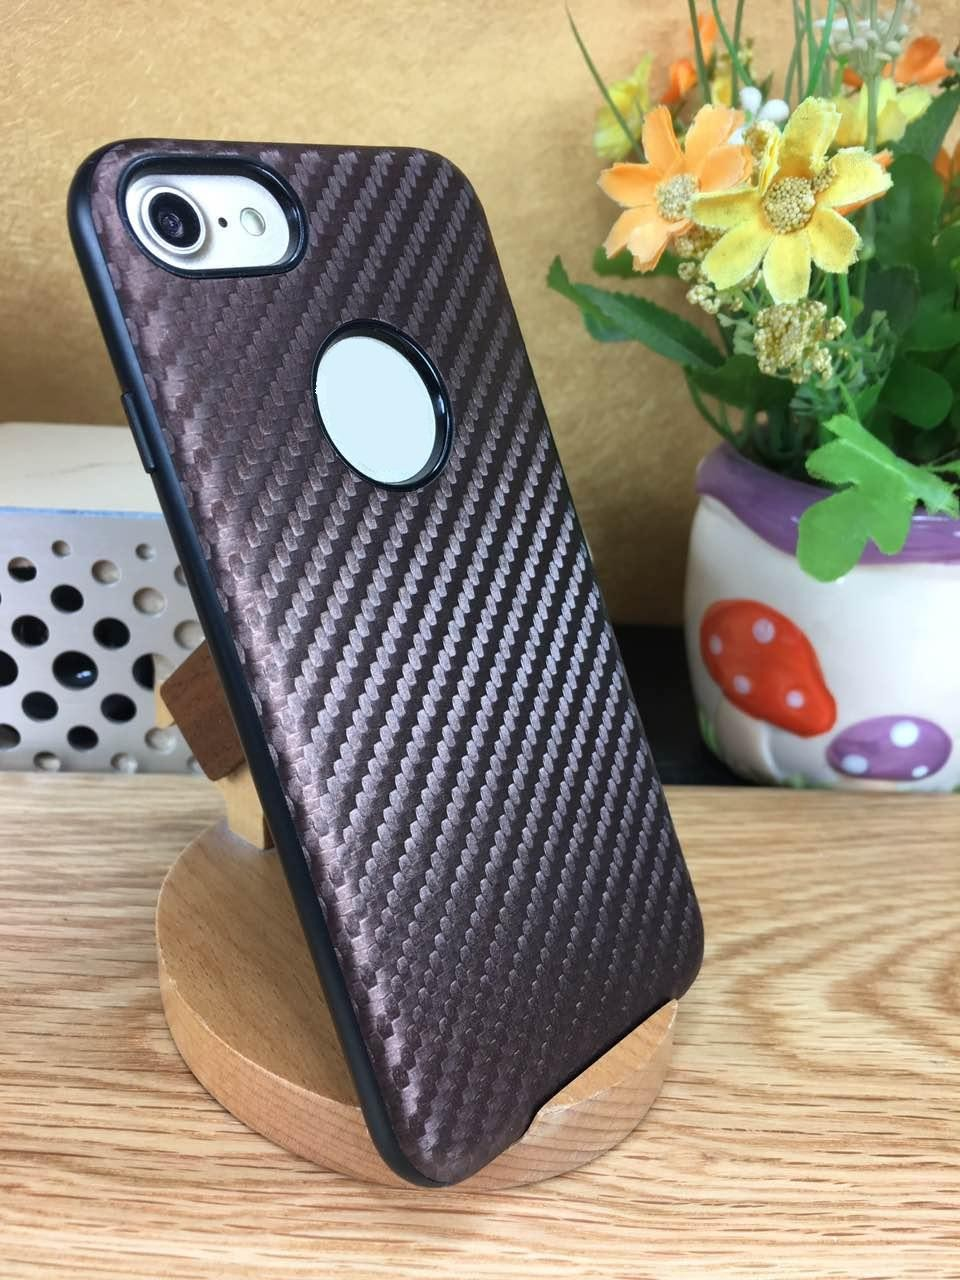 2017 New Hot Selling 7 Colors Available Carbon Fiber Pattern TPU Case for iPhone 6/7